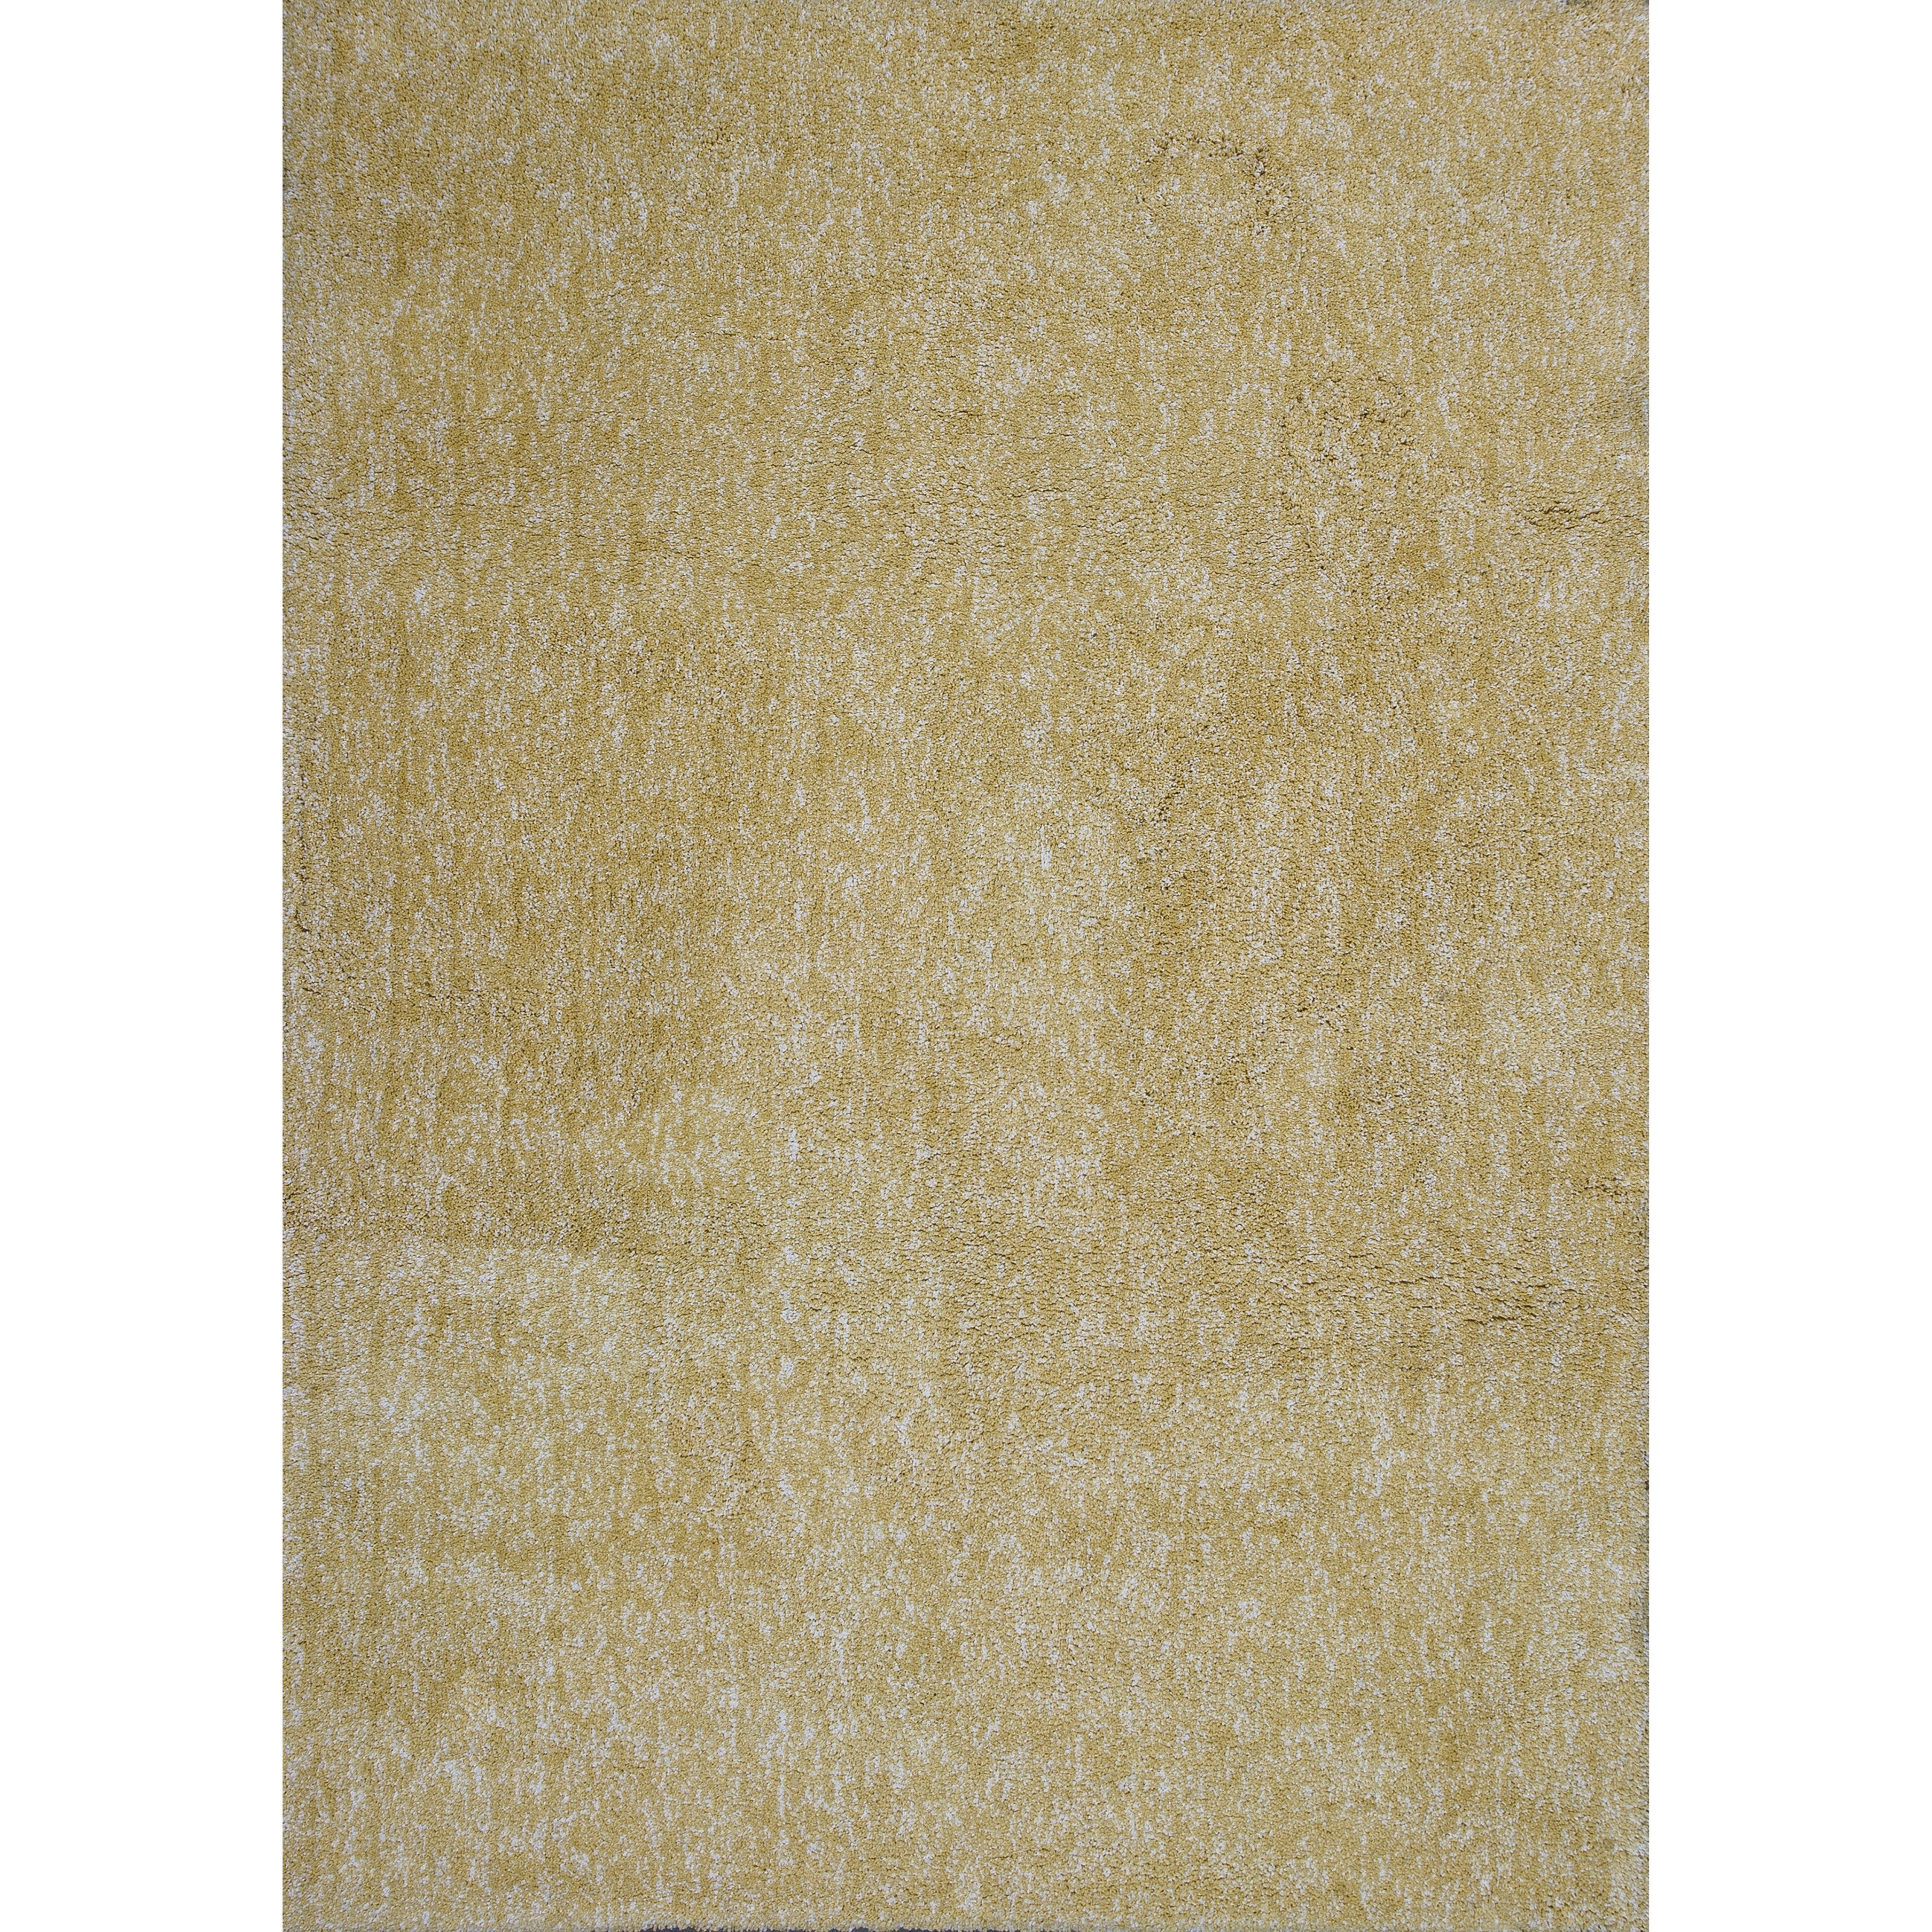 "3'3"" X 5'3"" Yellow Heather Shag Area Rug"